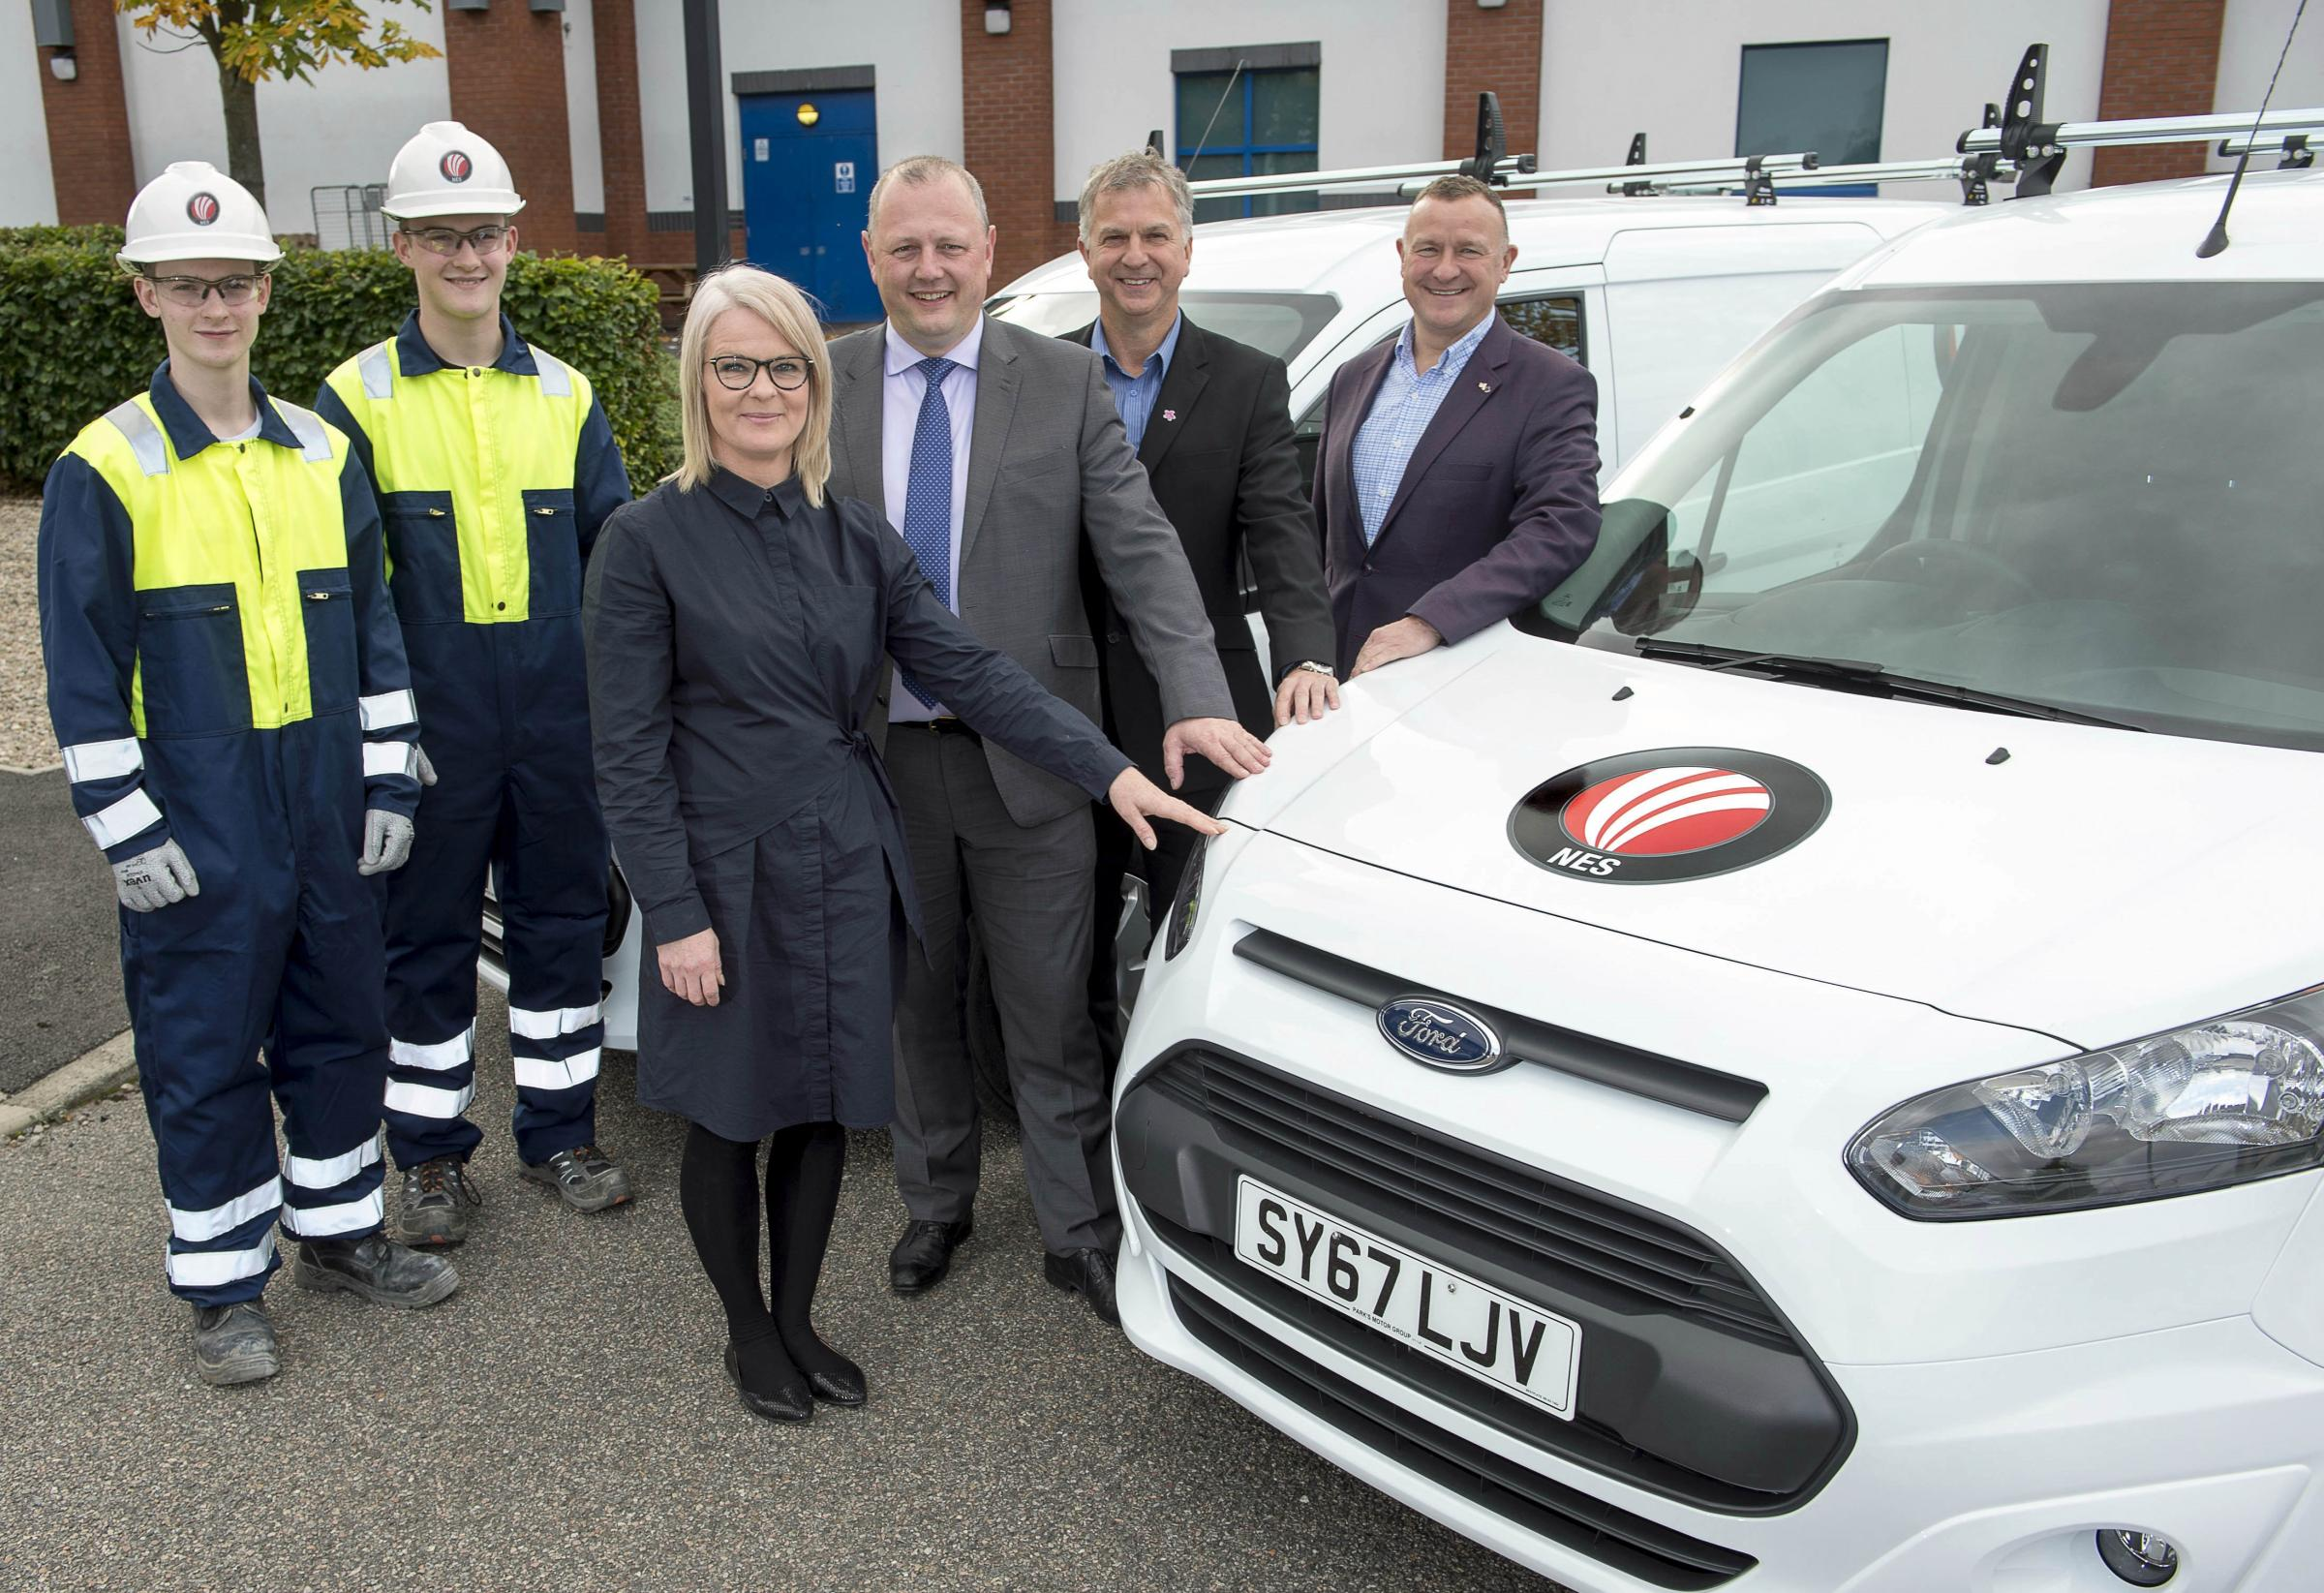 From left: apprentices Tyler Whitty and Kyle Livingstone; Kirsty Bulloch, NES business development manager; Kenny Duncan, NES managing director; Keith Paterson, NES director; and SNP MP Drew Hendry